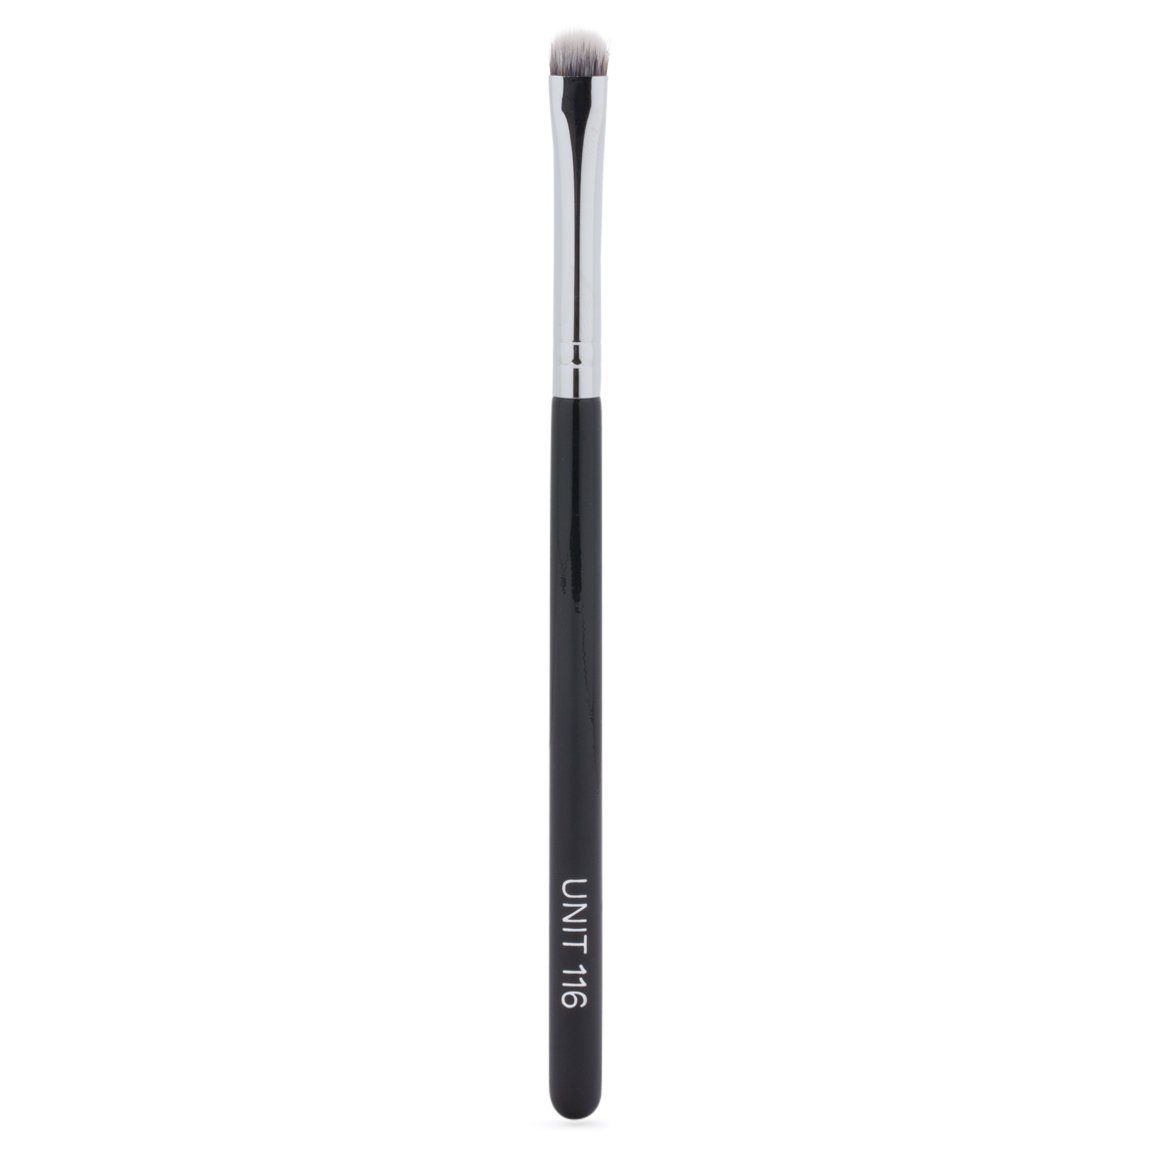 UNIT 116 Eye Brush